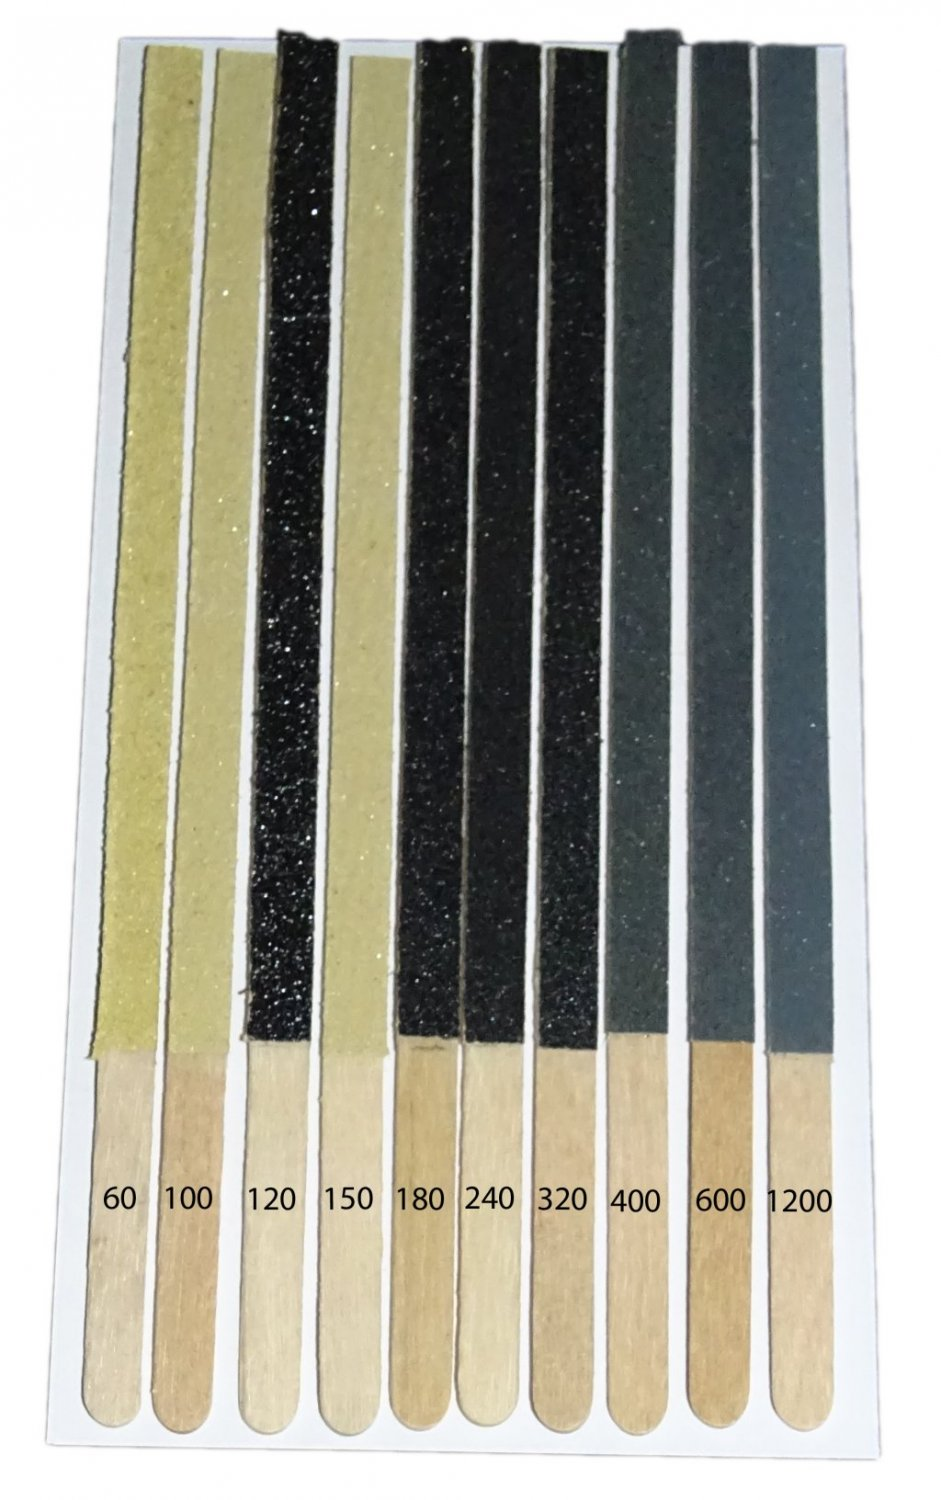 Sanding Sticks Type 1 Double Sided 10 Grades 2 of each N Gauge Aid + 2 FREE #2028